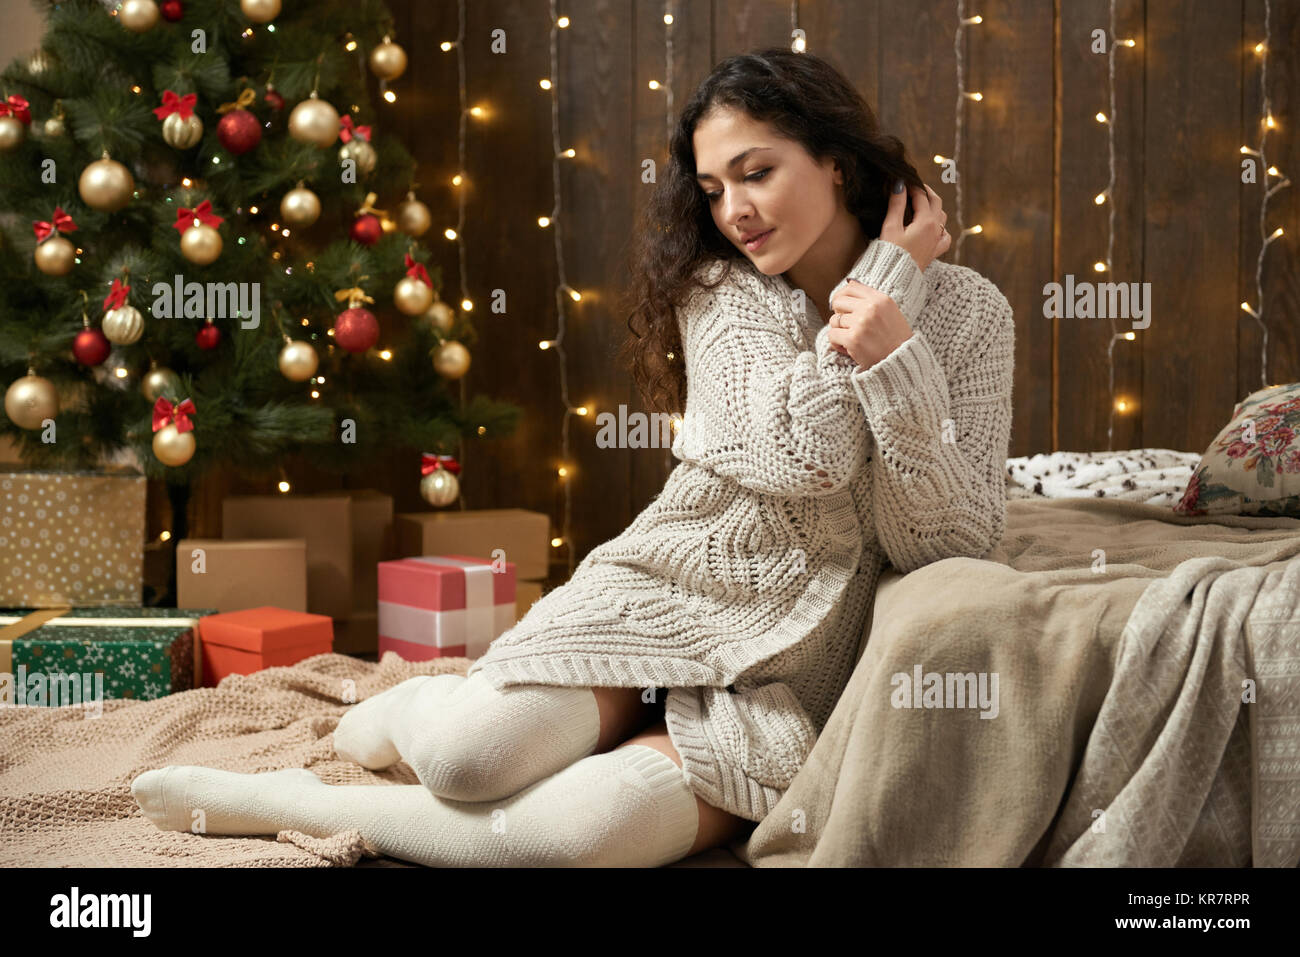 young girl in christmas lights and decoration dressed in white